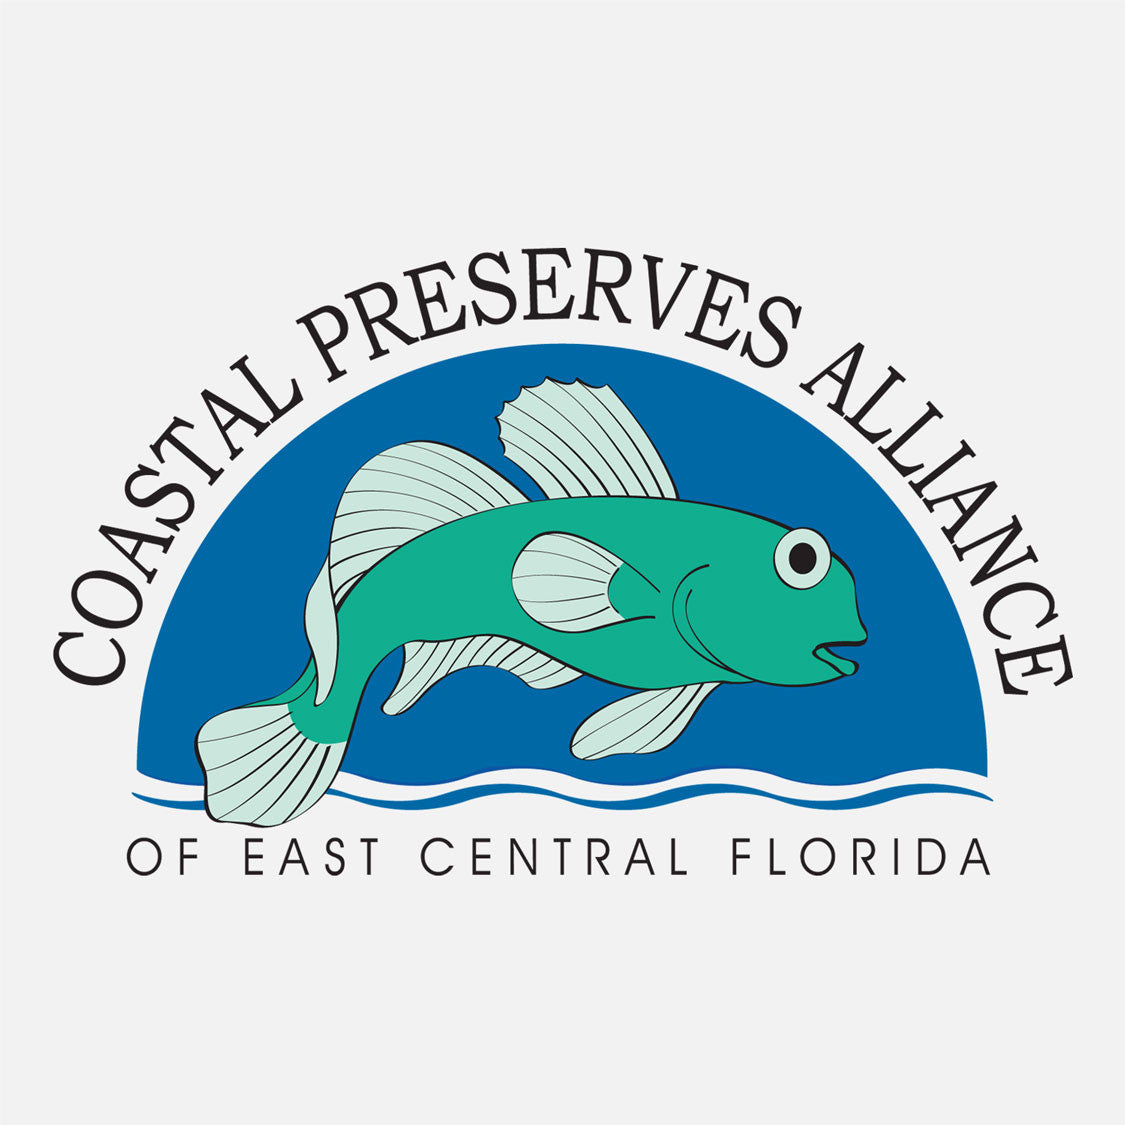 Recognized by the Florida Park Service as the Citizen Support Organization for the St. Sebastian River Preserve State Park in Fellsmere, Florida. The logo is a graphical depiction of a goby.